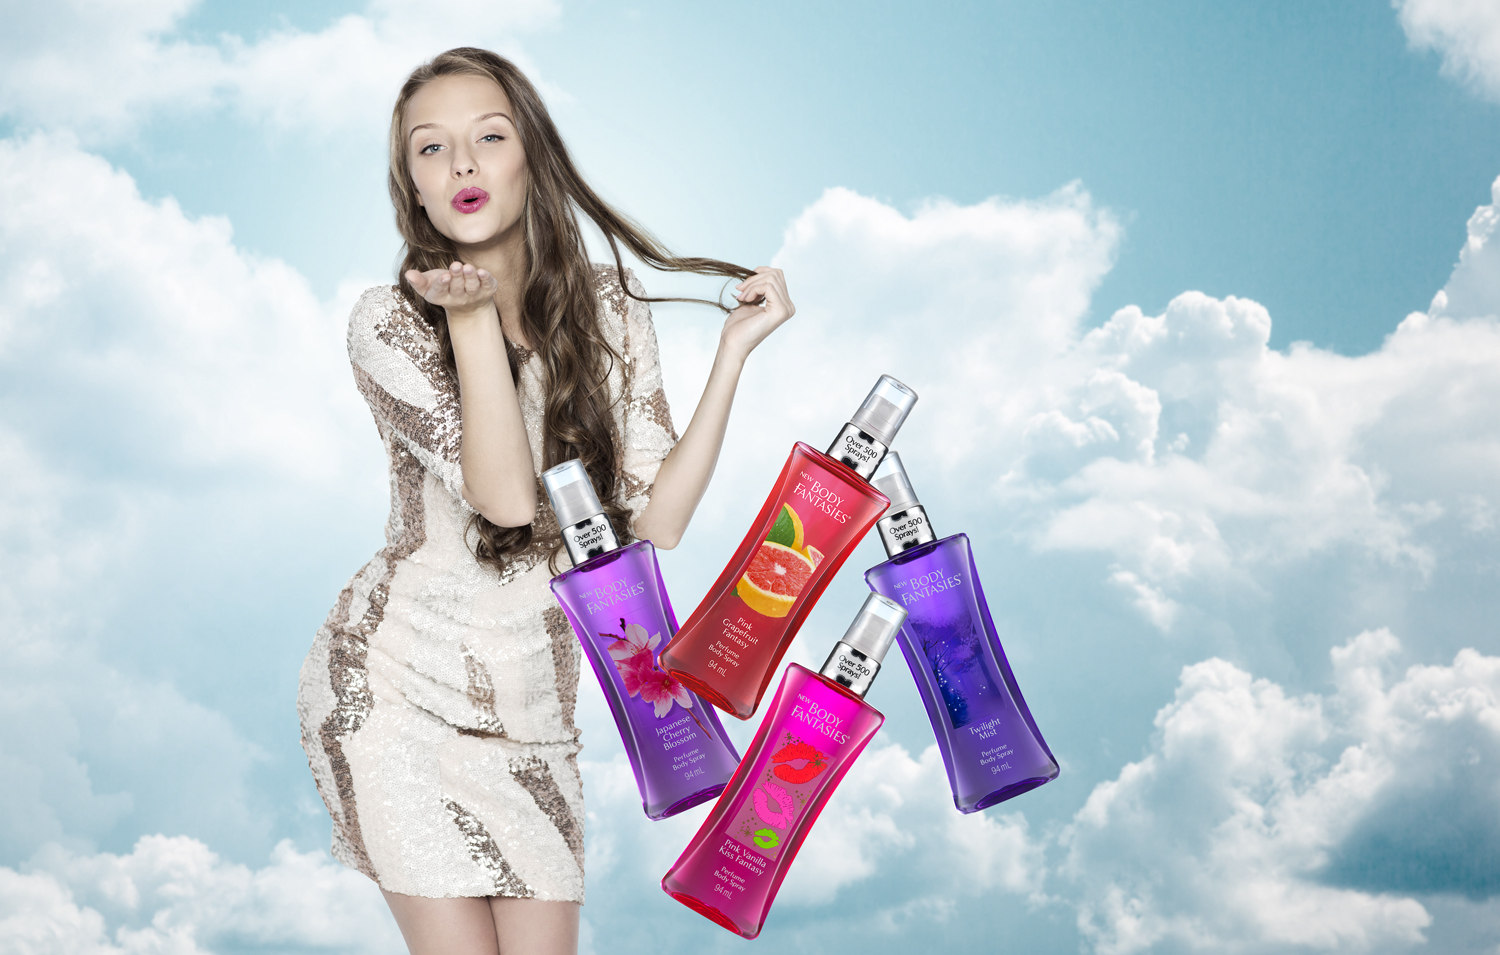 BODY FANTASIES - VIViD managed the UK launch of the USA's No.1 body perfume spray through a creative PR, social media and digital strategy that reached, inspired and motivated a young female audience to experience new fragrance sensations.